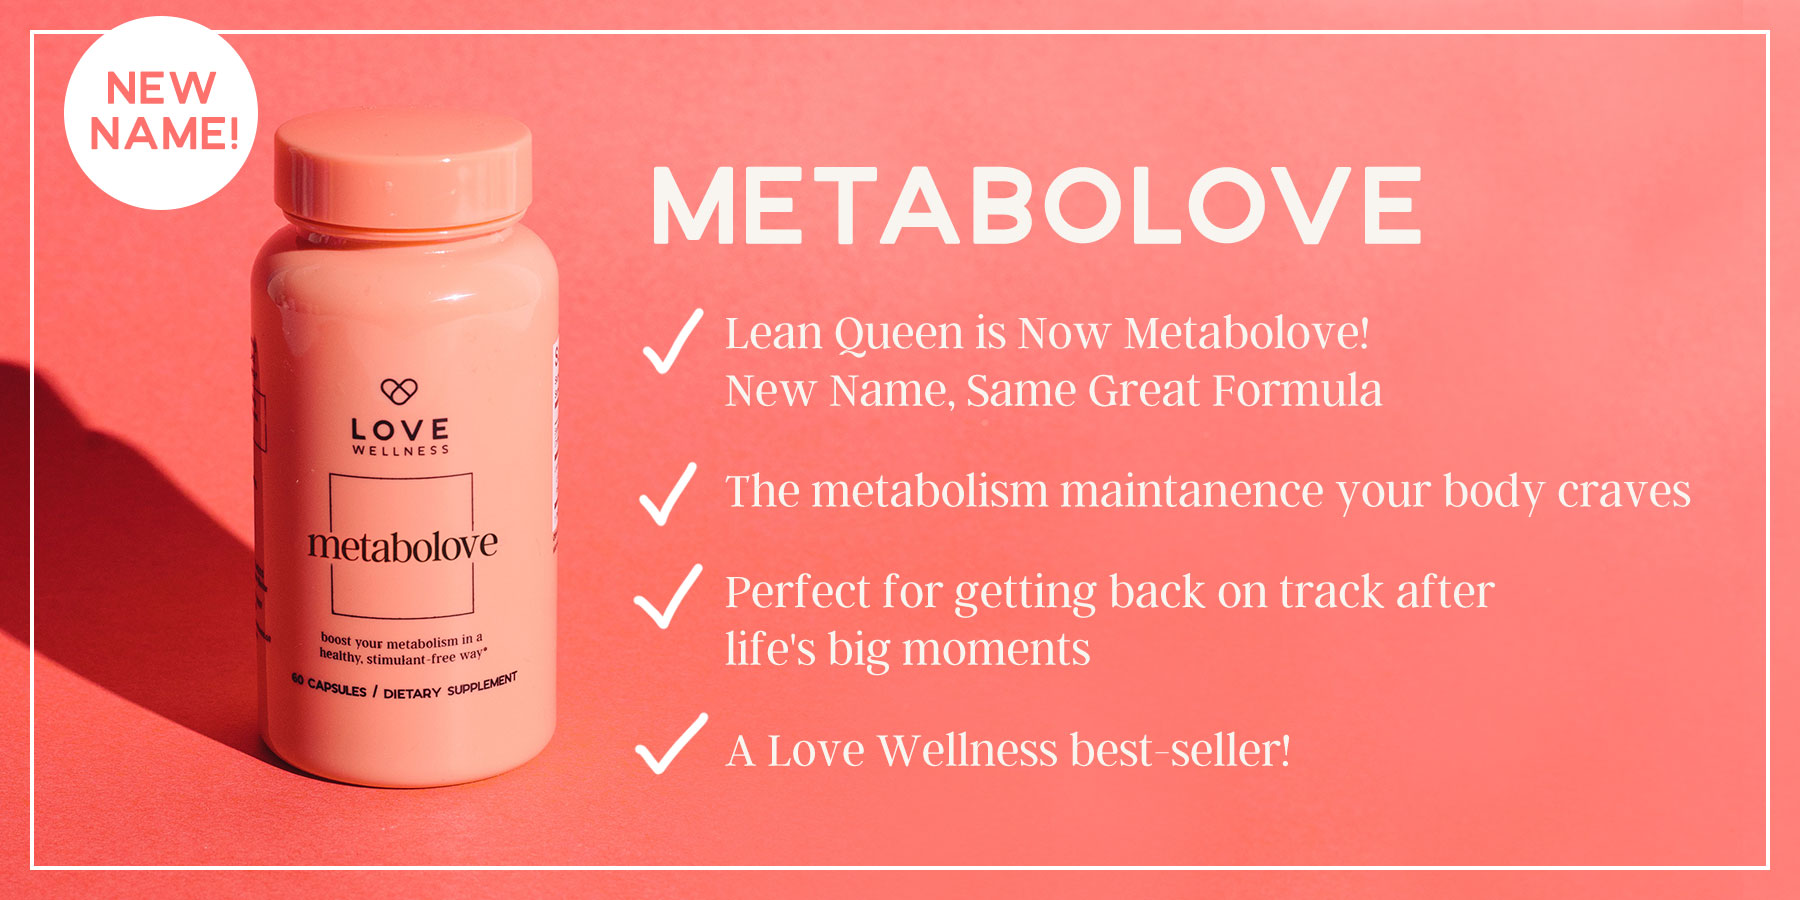 Metabolove - Love Wellness Natural Metabolism